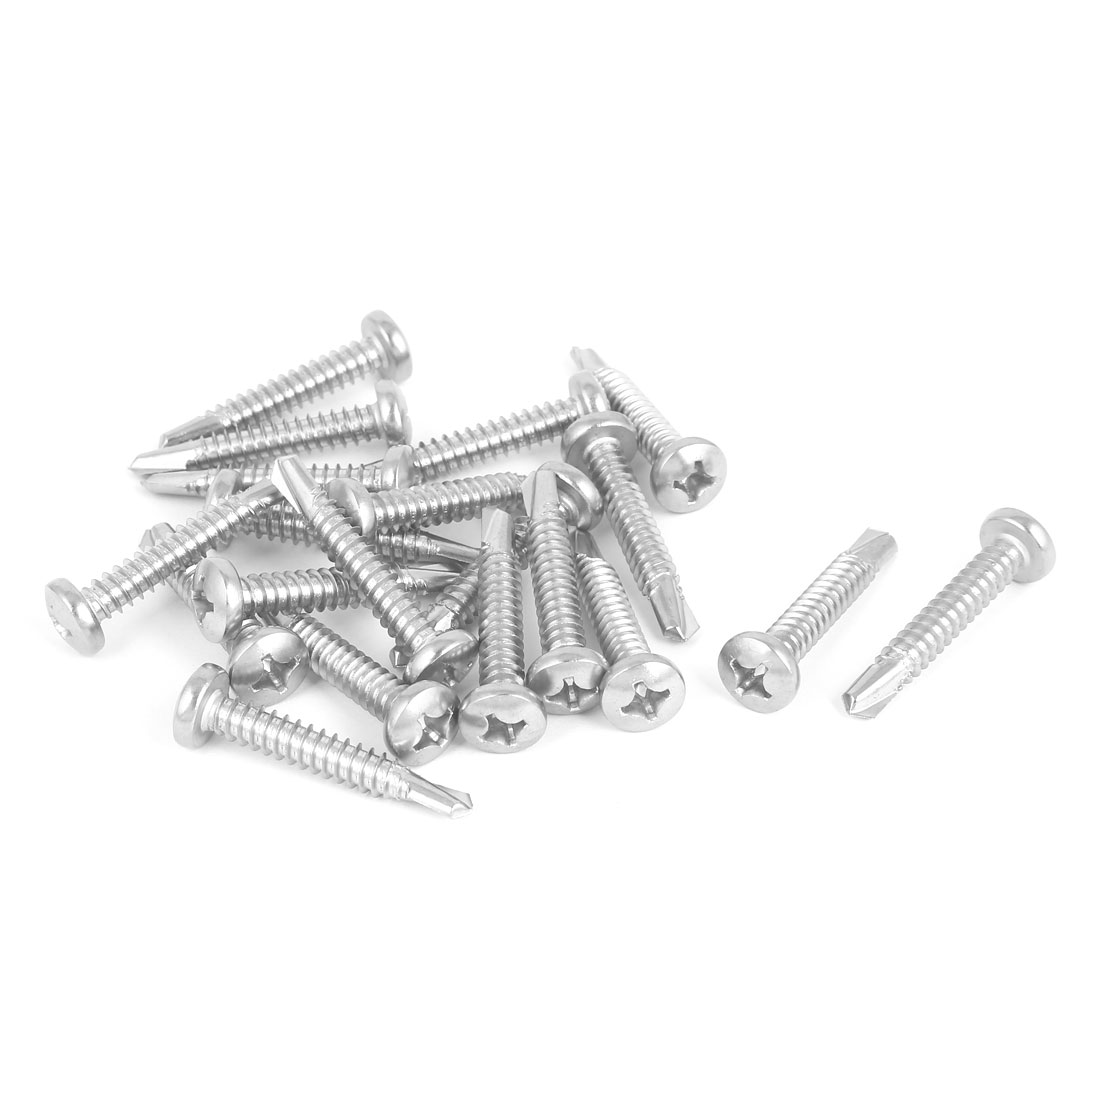 M6.3 x 38mm Thread 410 Stainless Steel Pan Head Self Drilling Screws 20 Pcs